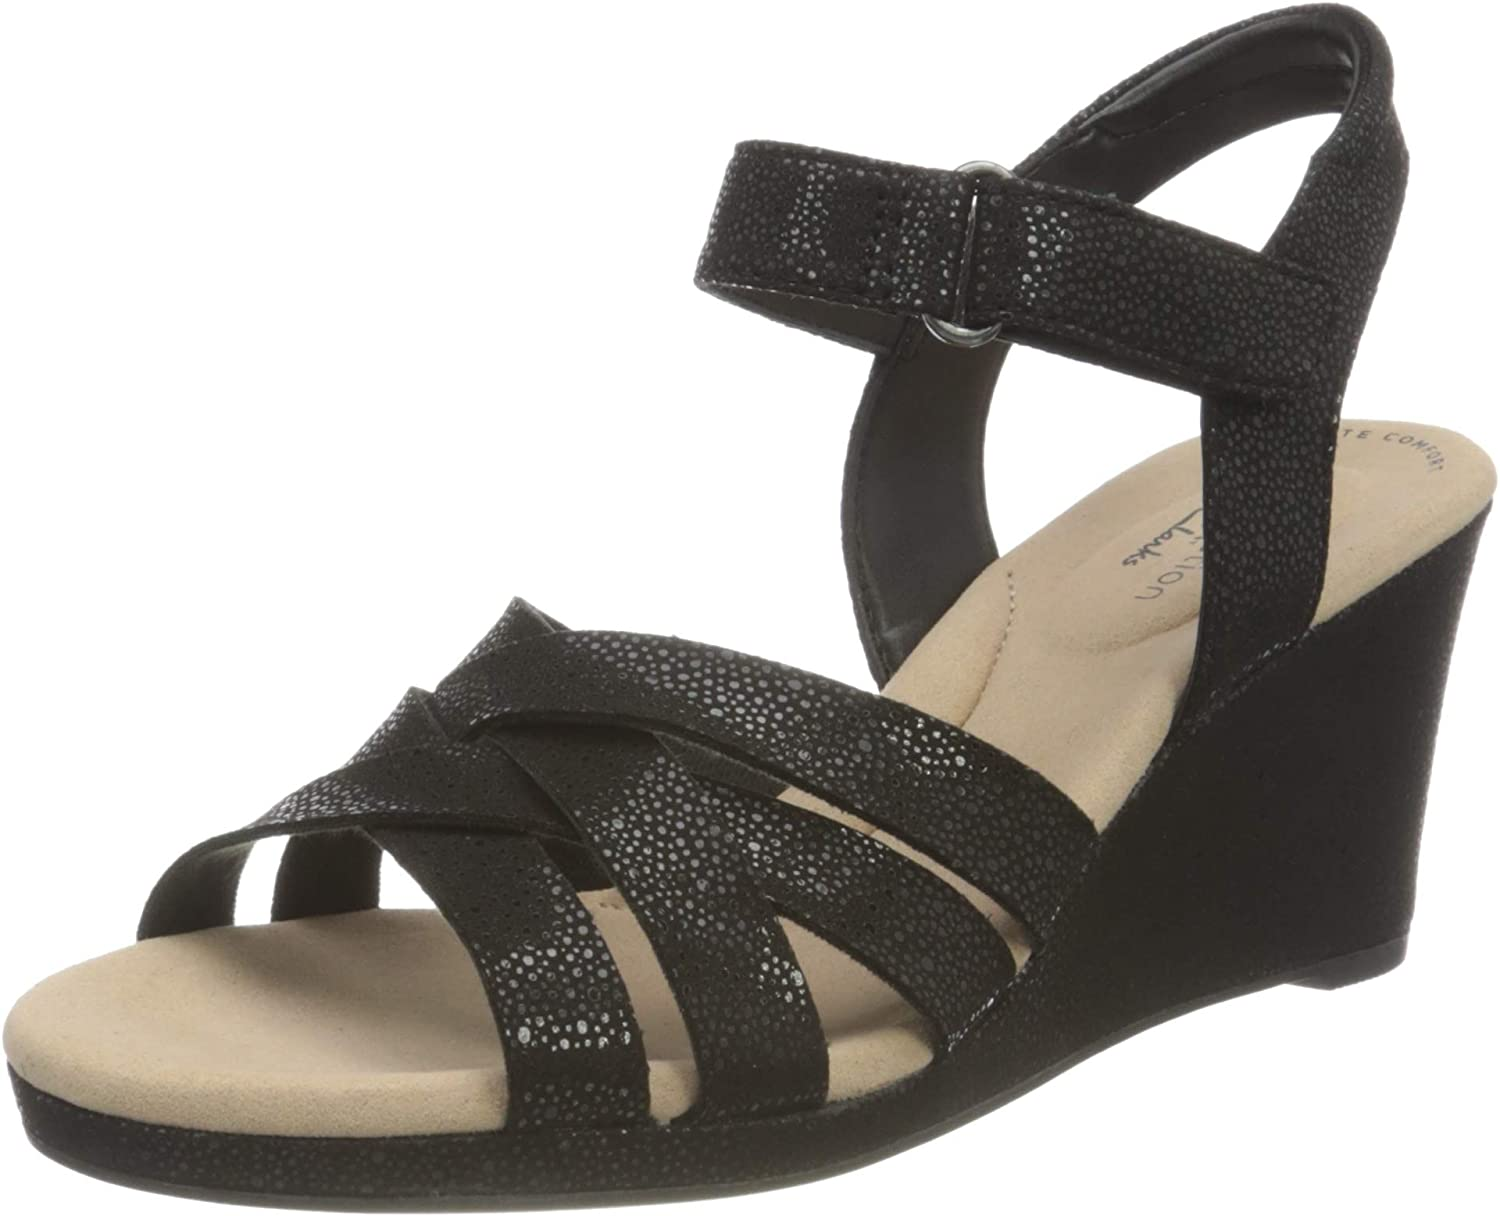 Clarks Women's Max 55% Limited time cheap sale OFF Ankle-Strap Heeled Sandal